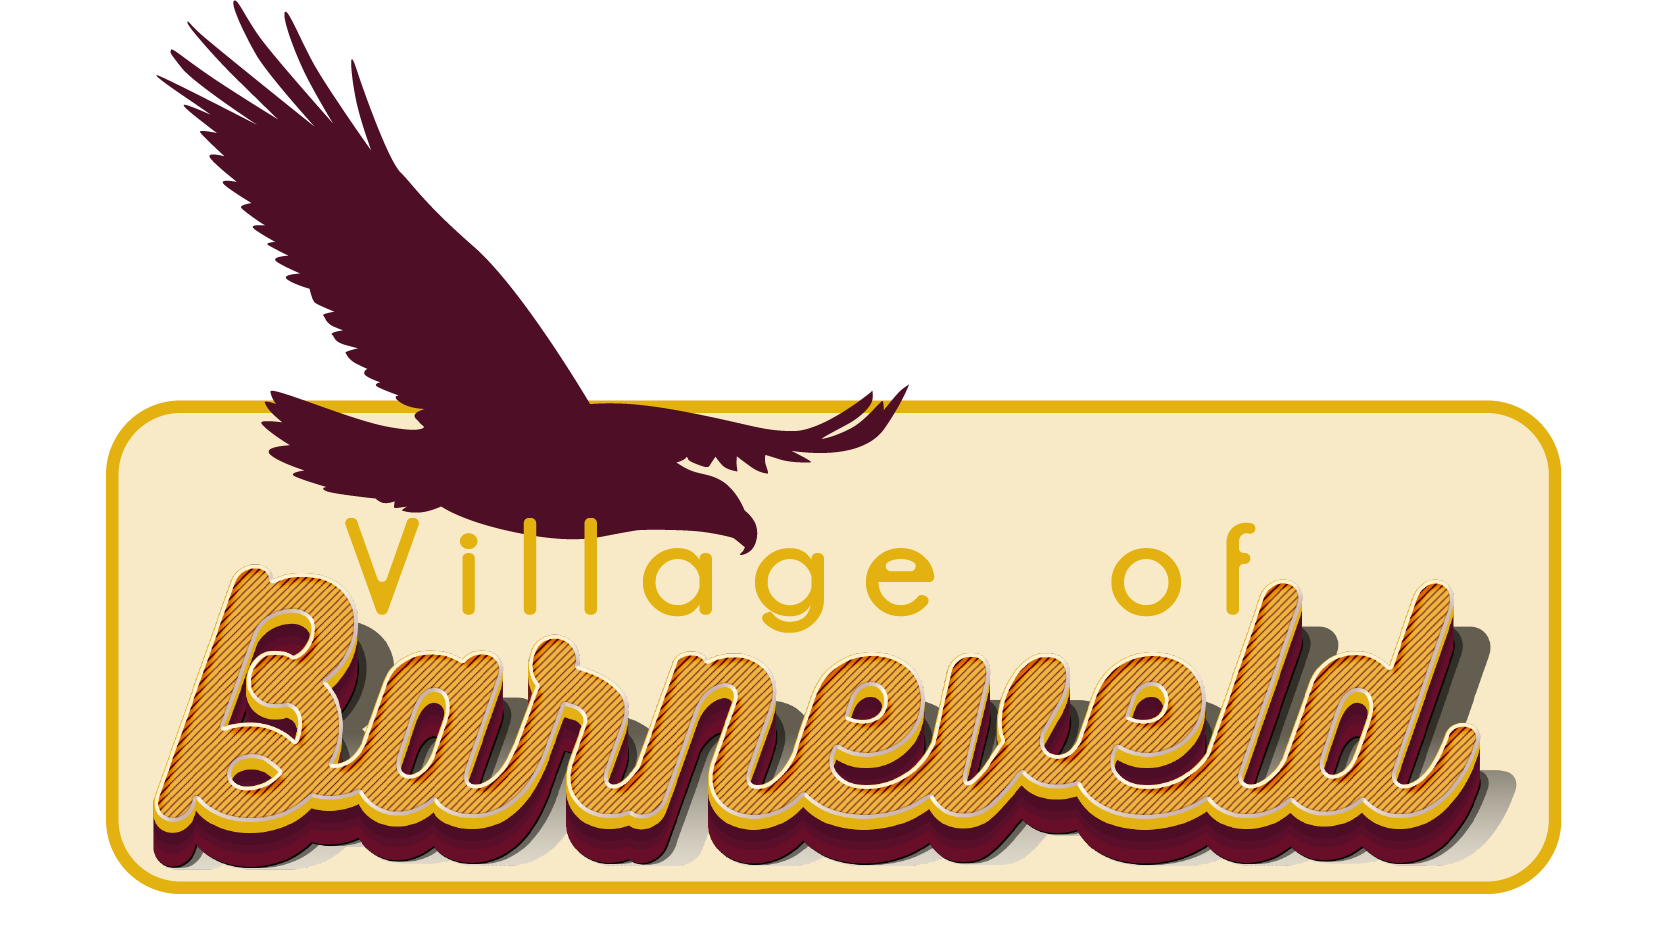 Village of Barneveld